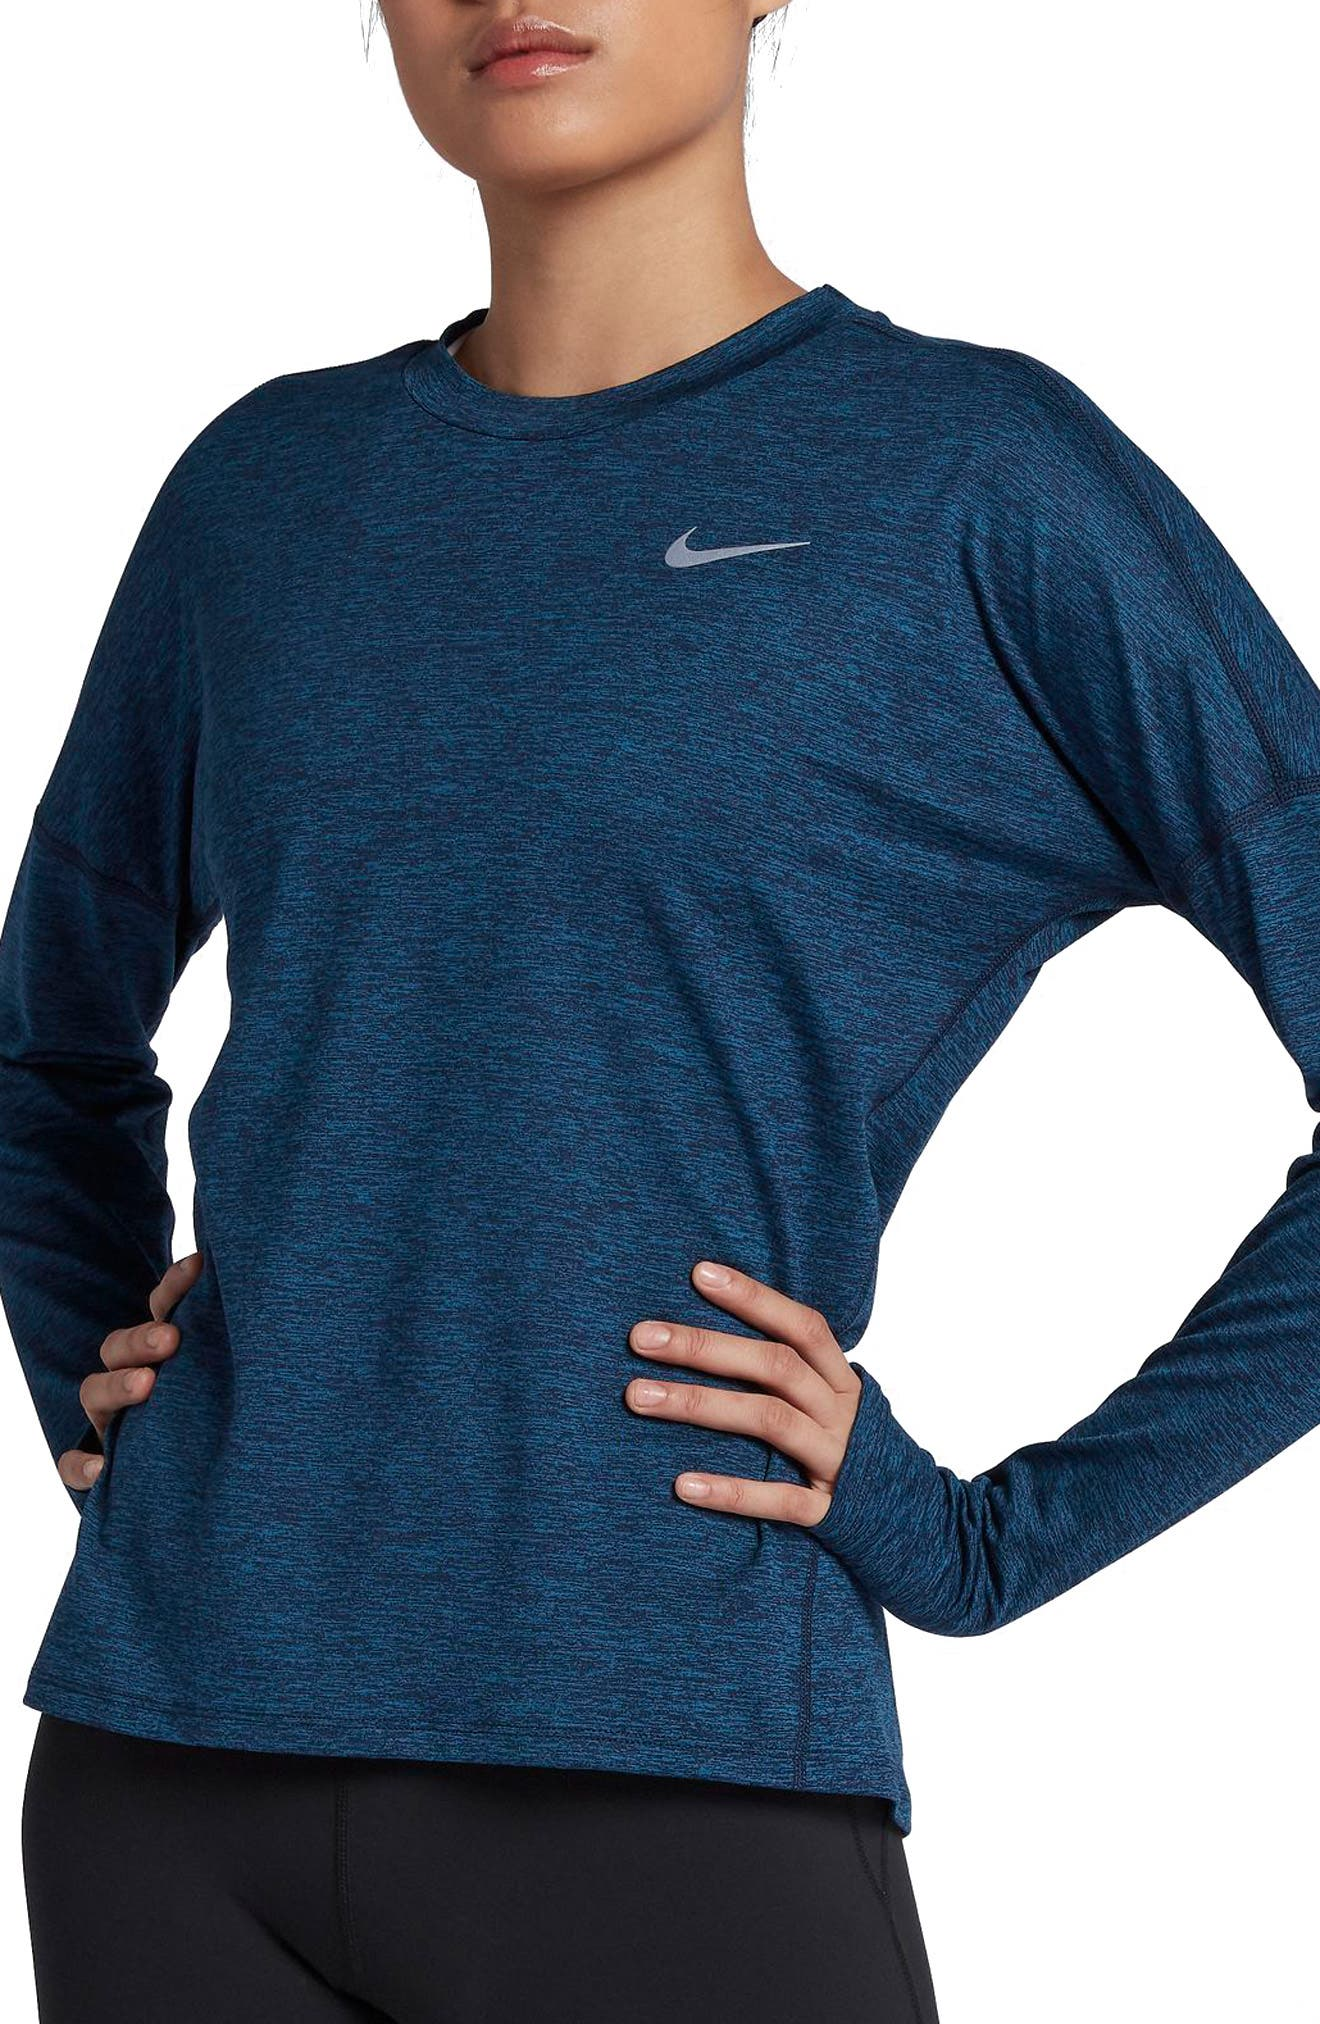 Dry Element Long Sleeve Top,                             Main thumbnail 1, color,                             Obsidian/ Blue Force/ Heather